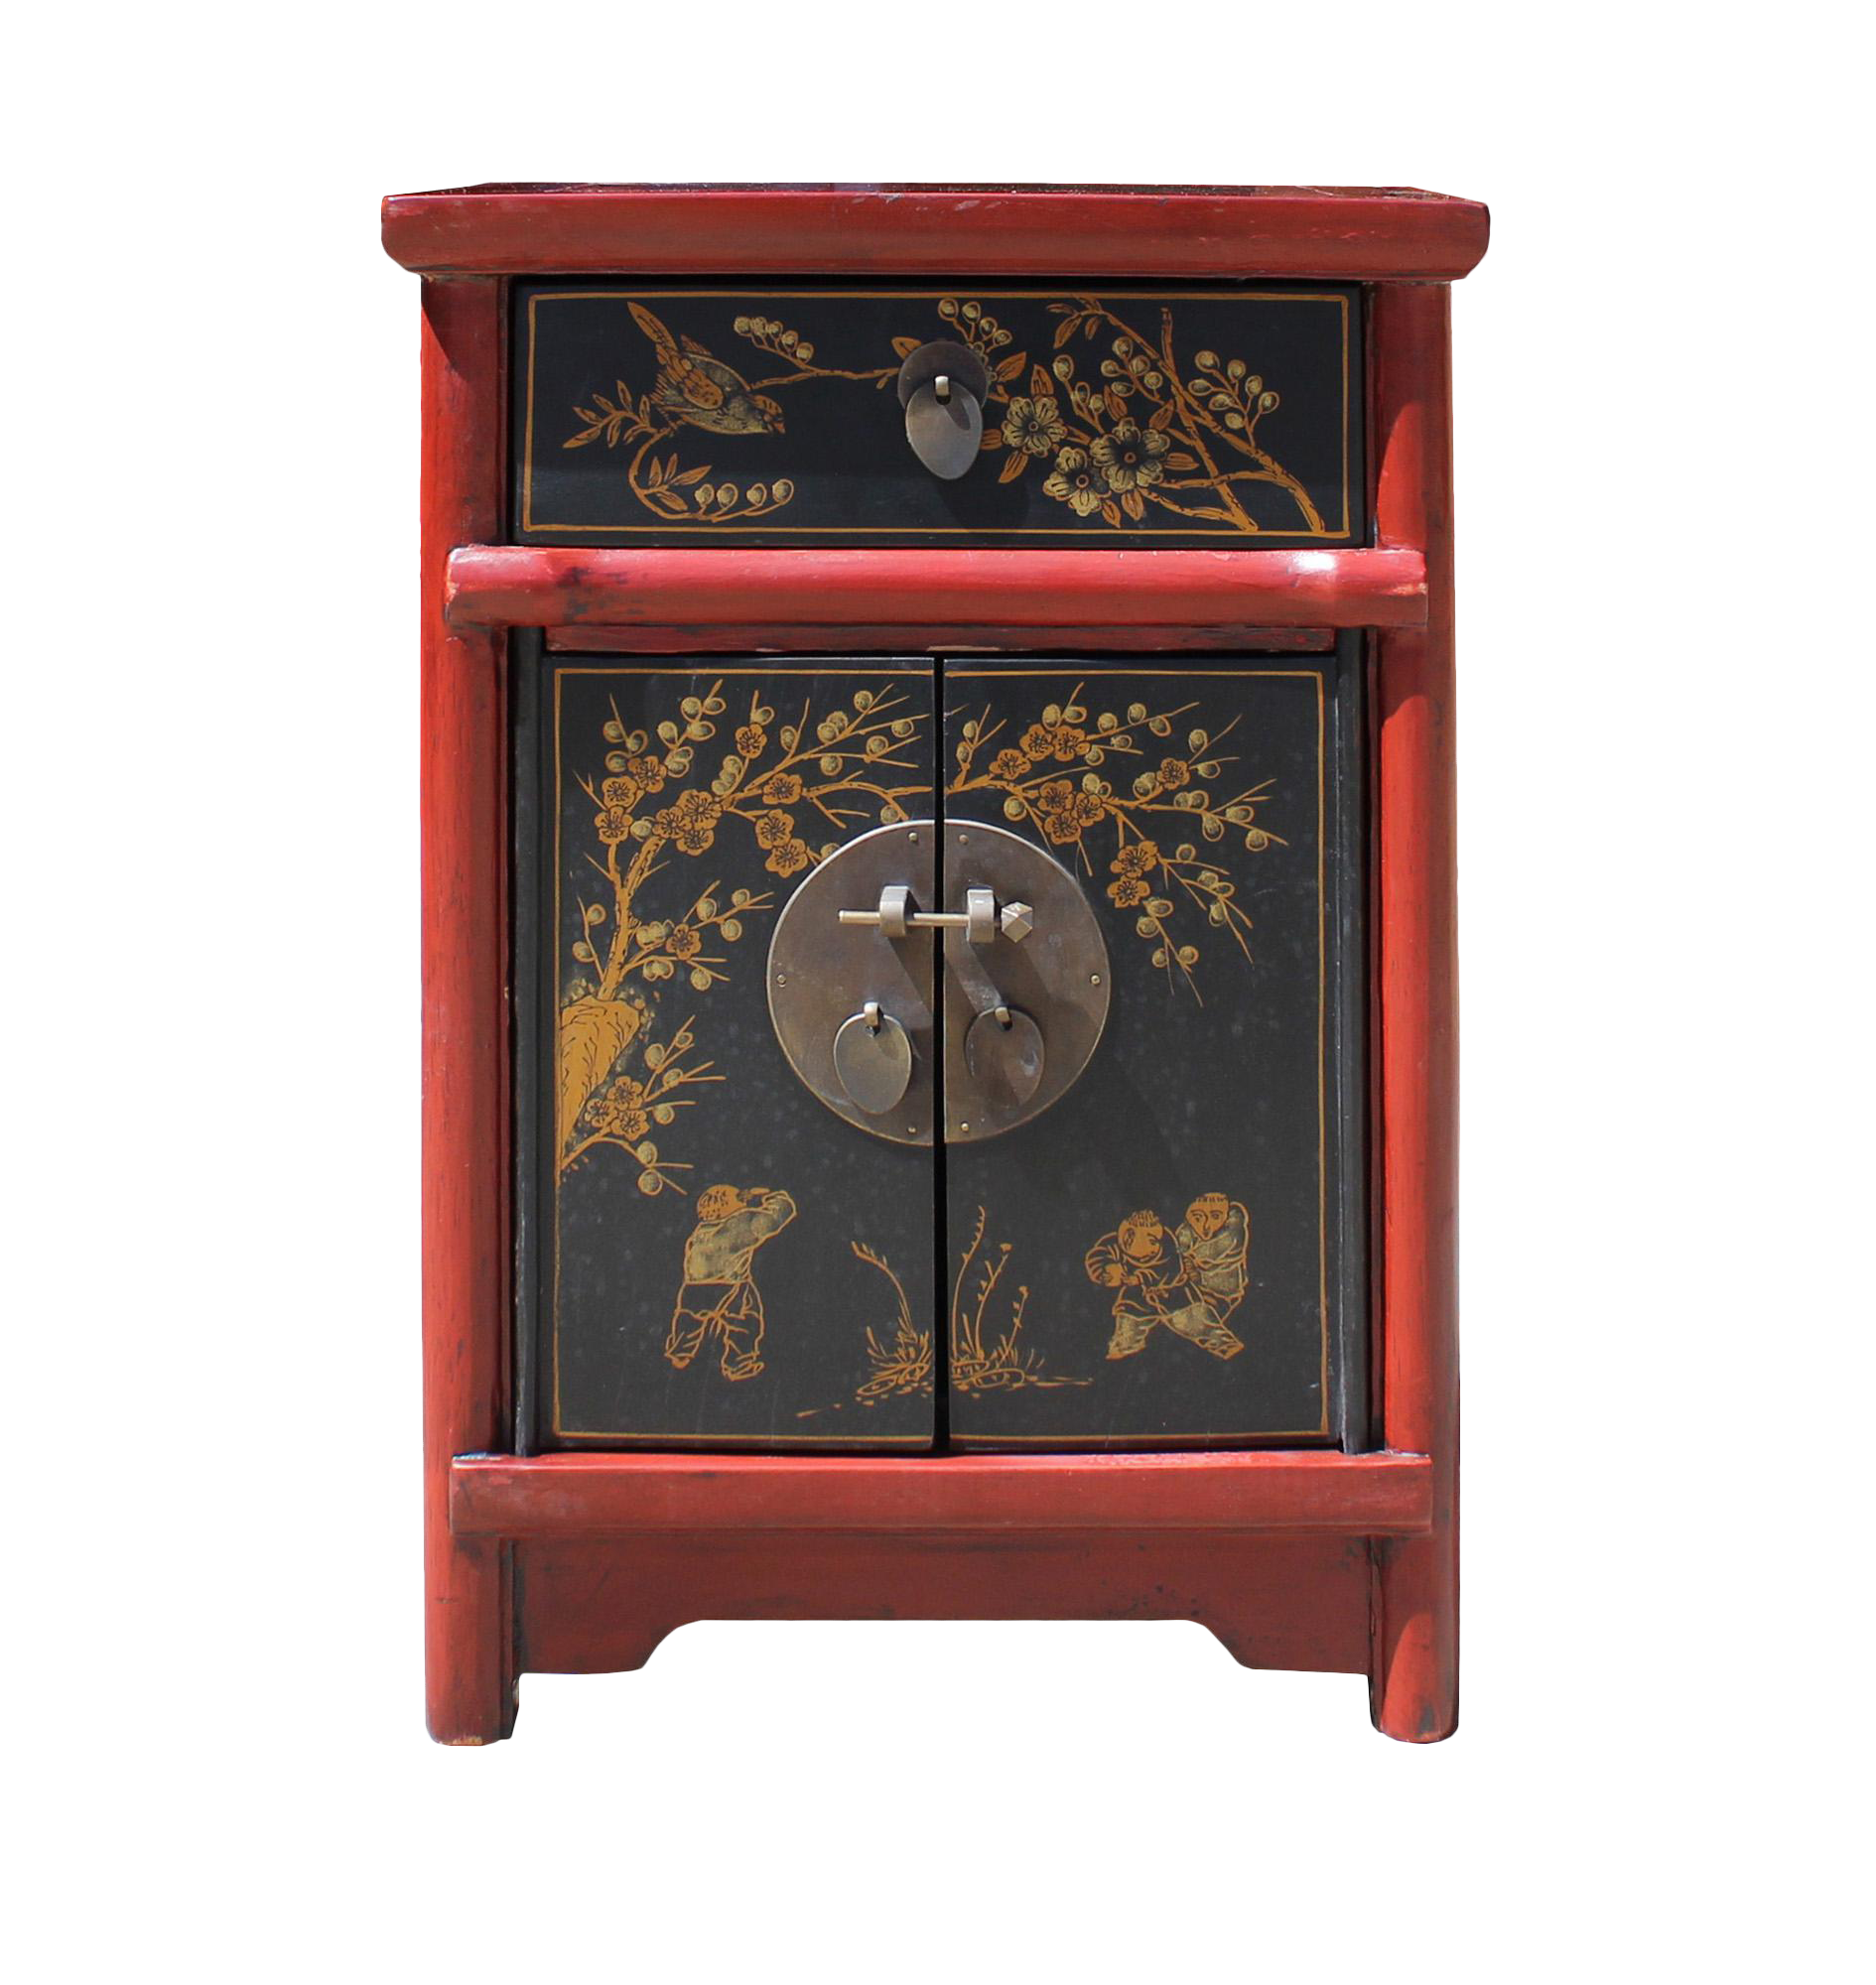 Chinese Rustic Red Black Lacquer Graphic End Table Nightstand